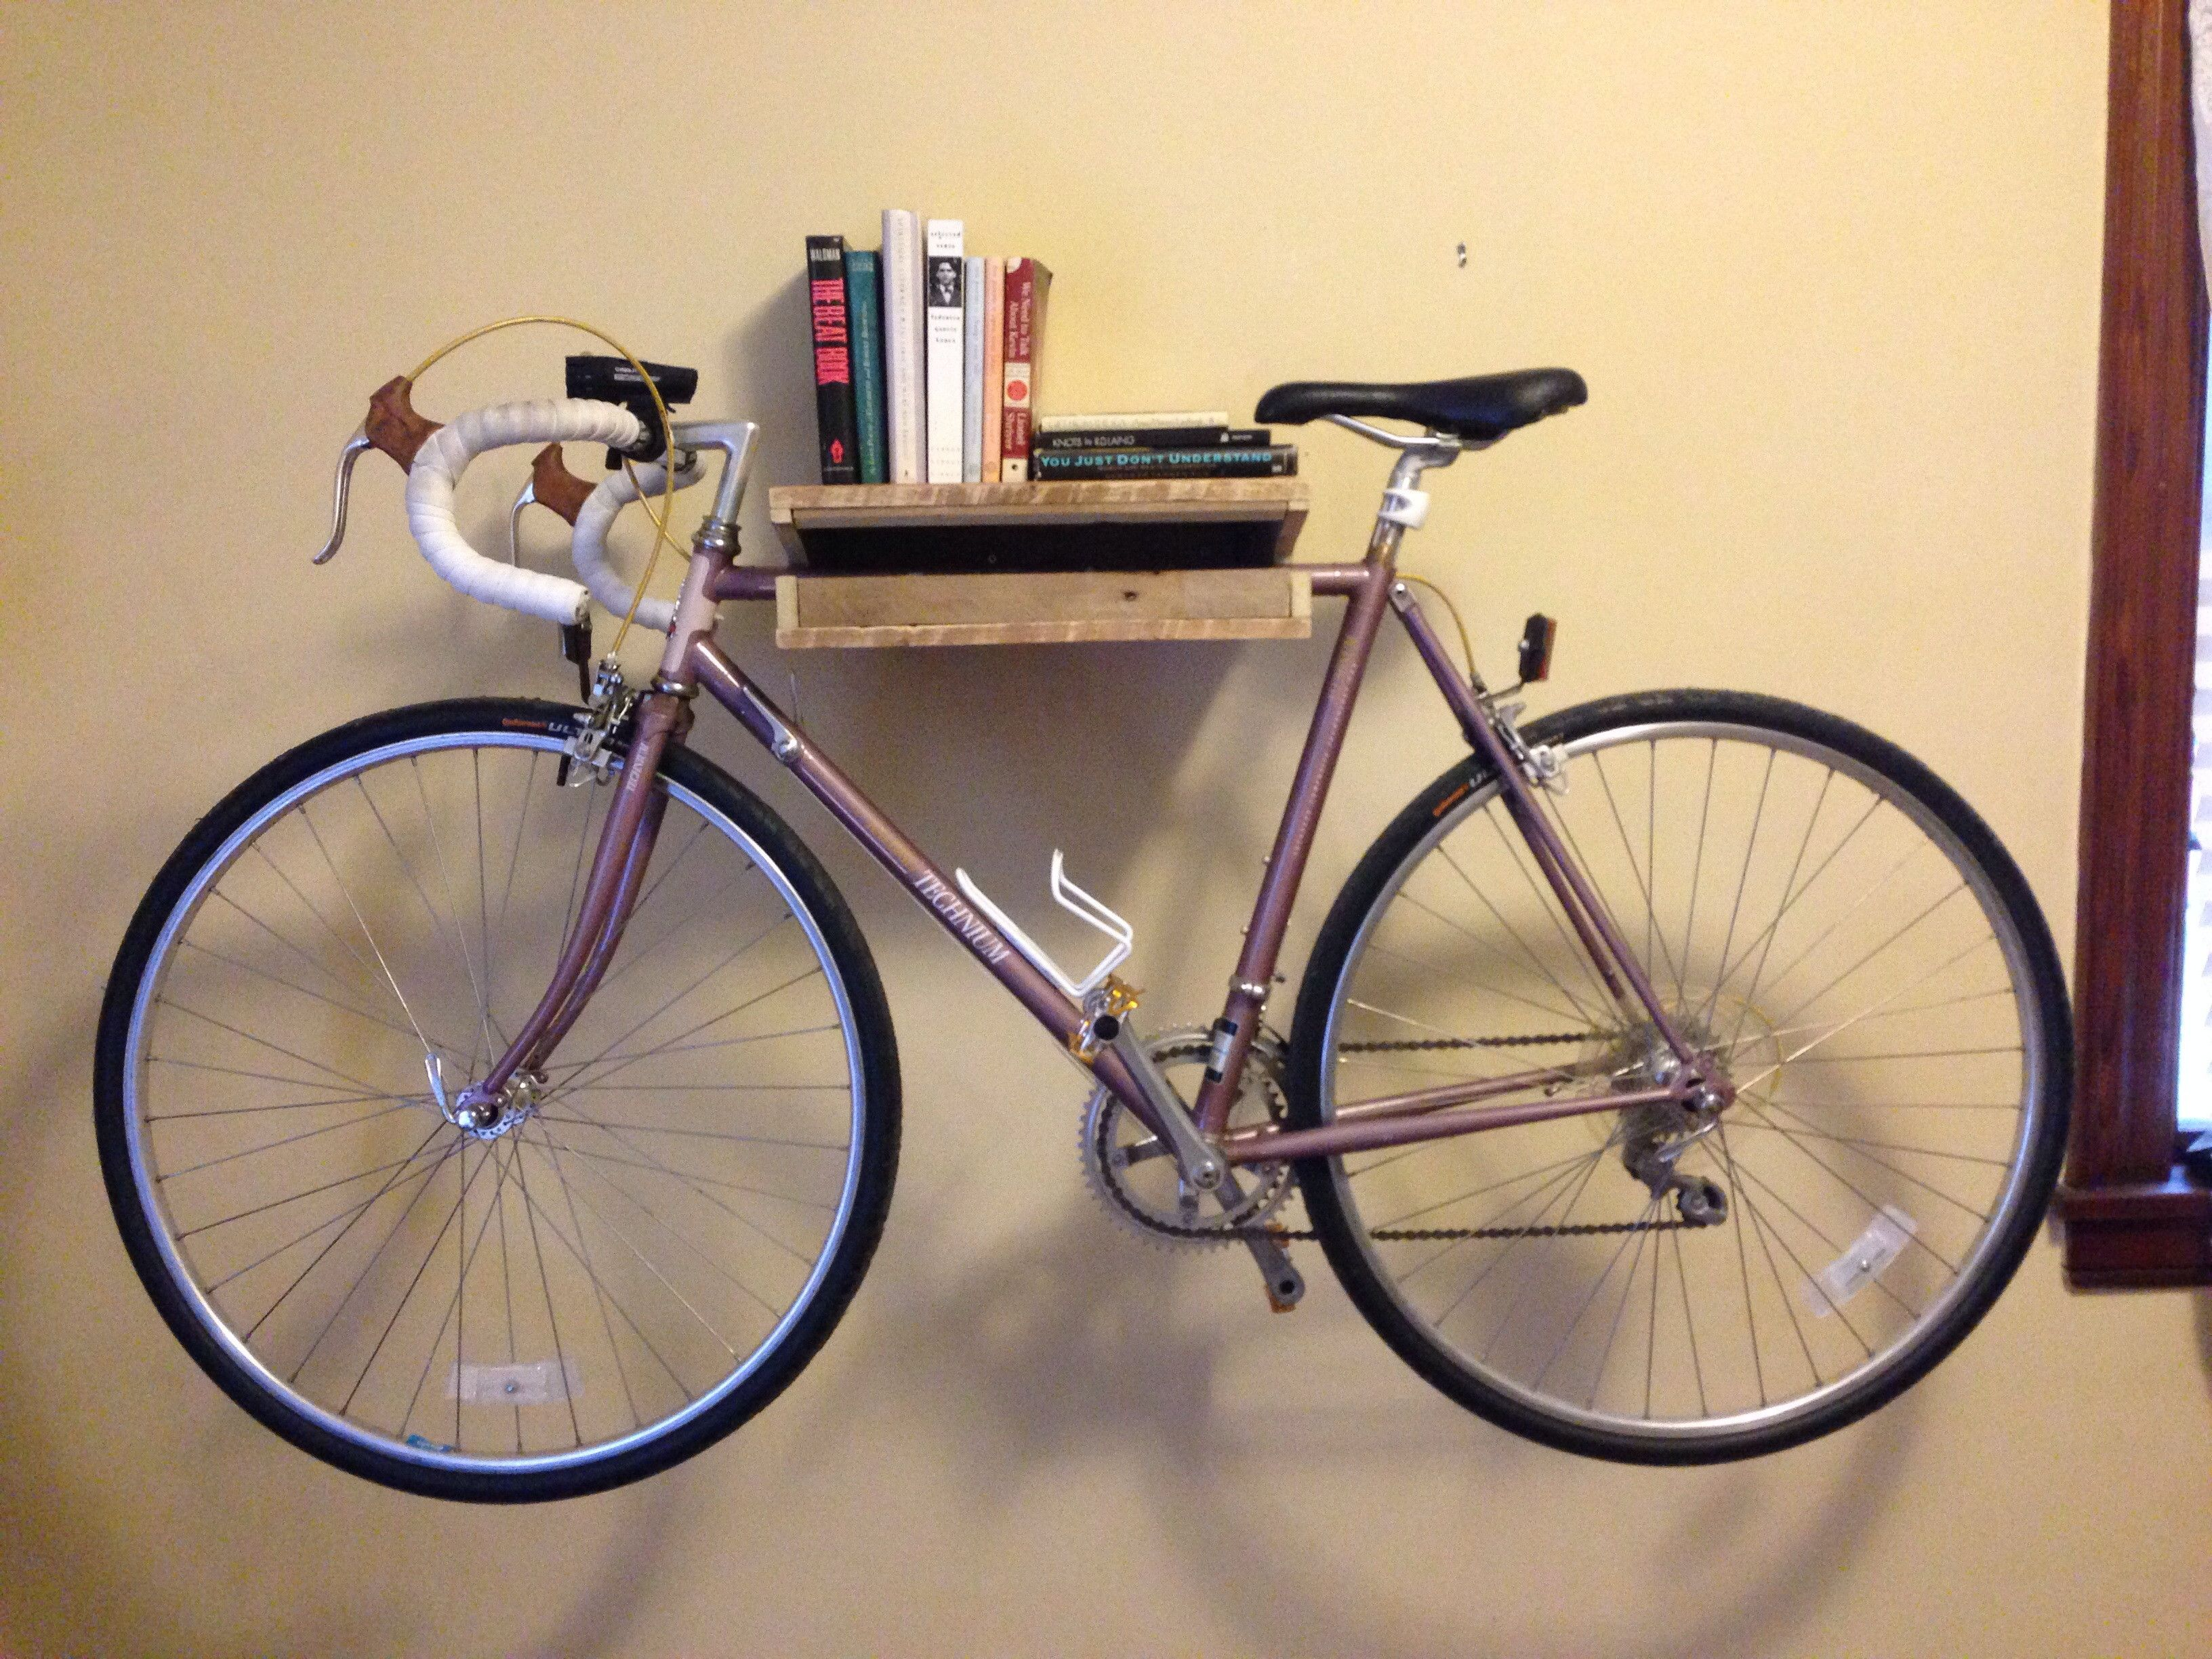 Diy Bike Shelf From Reddit